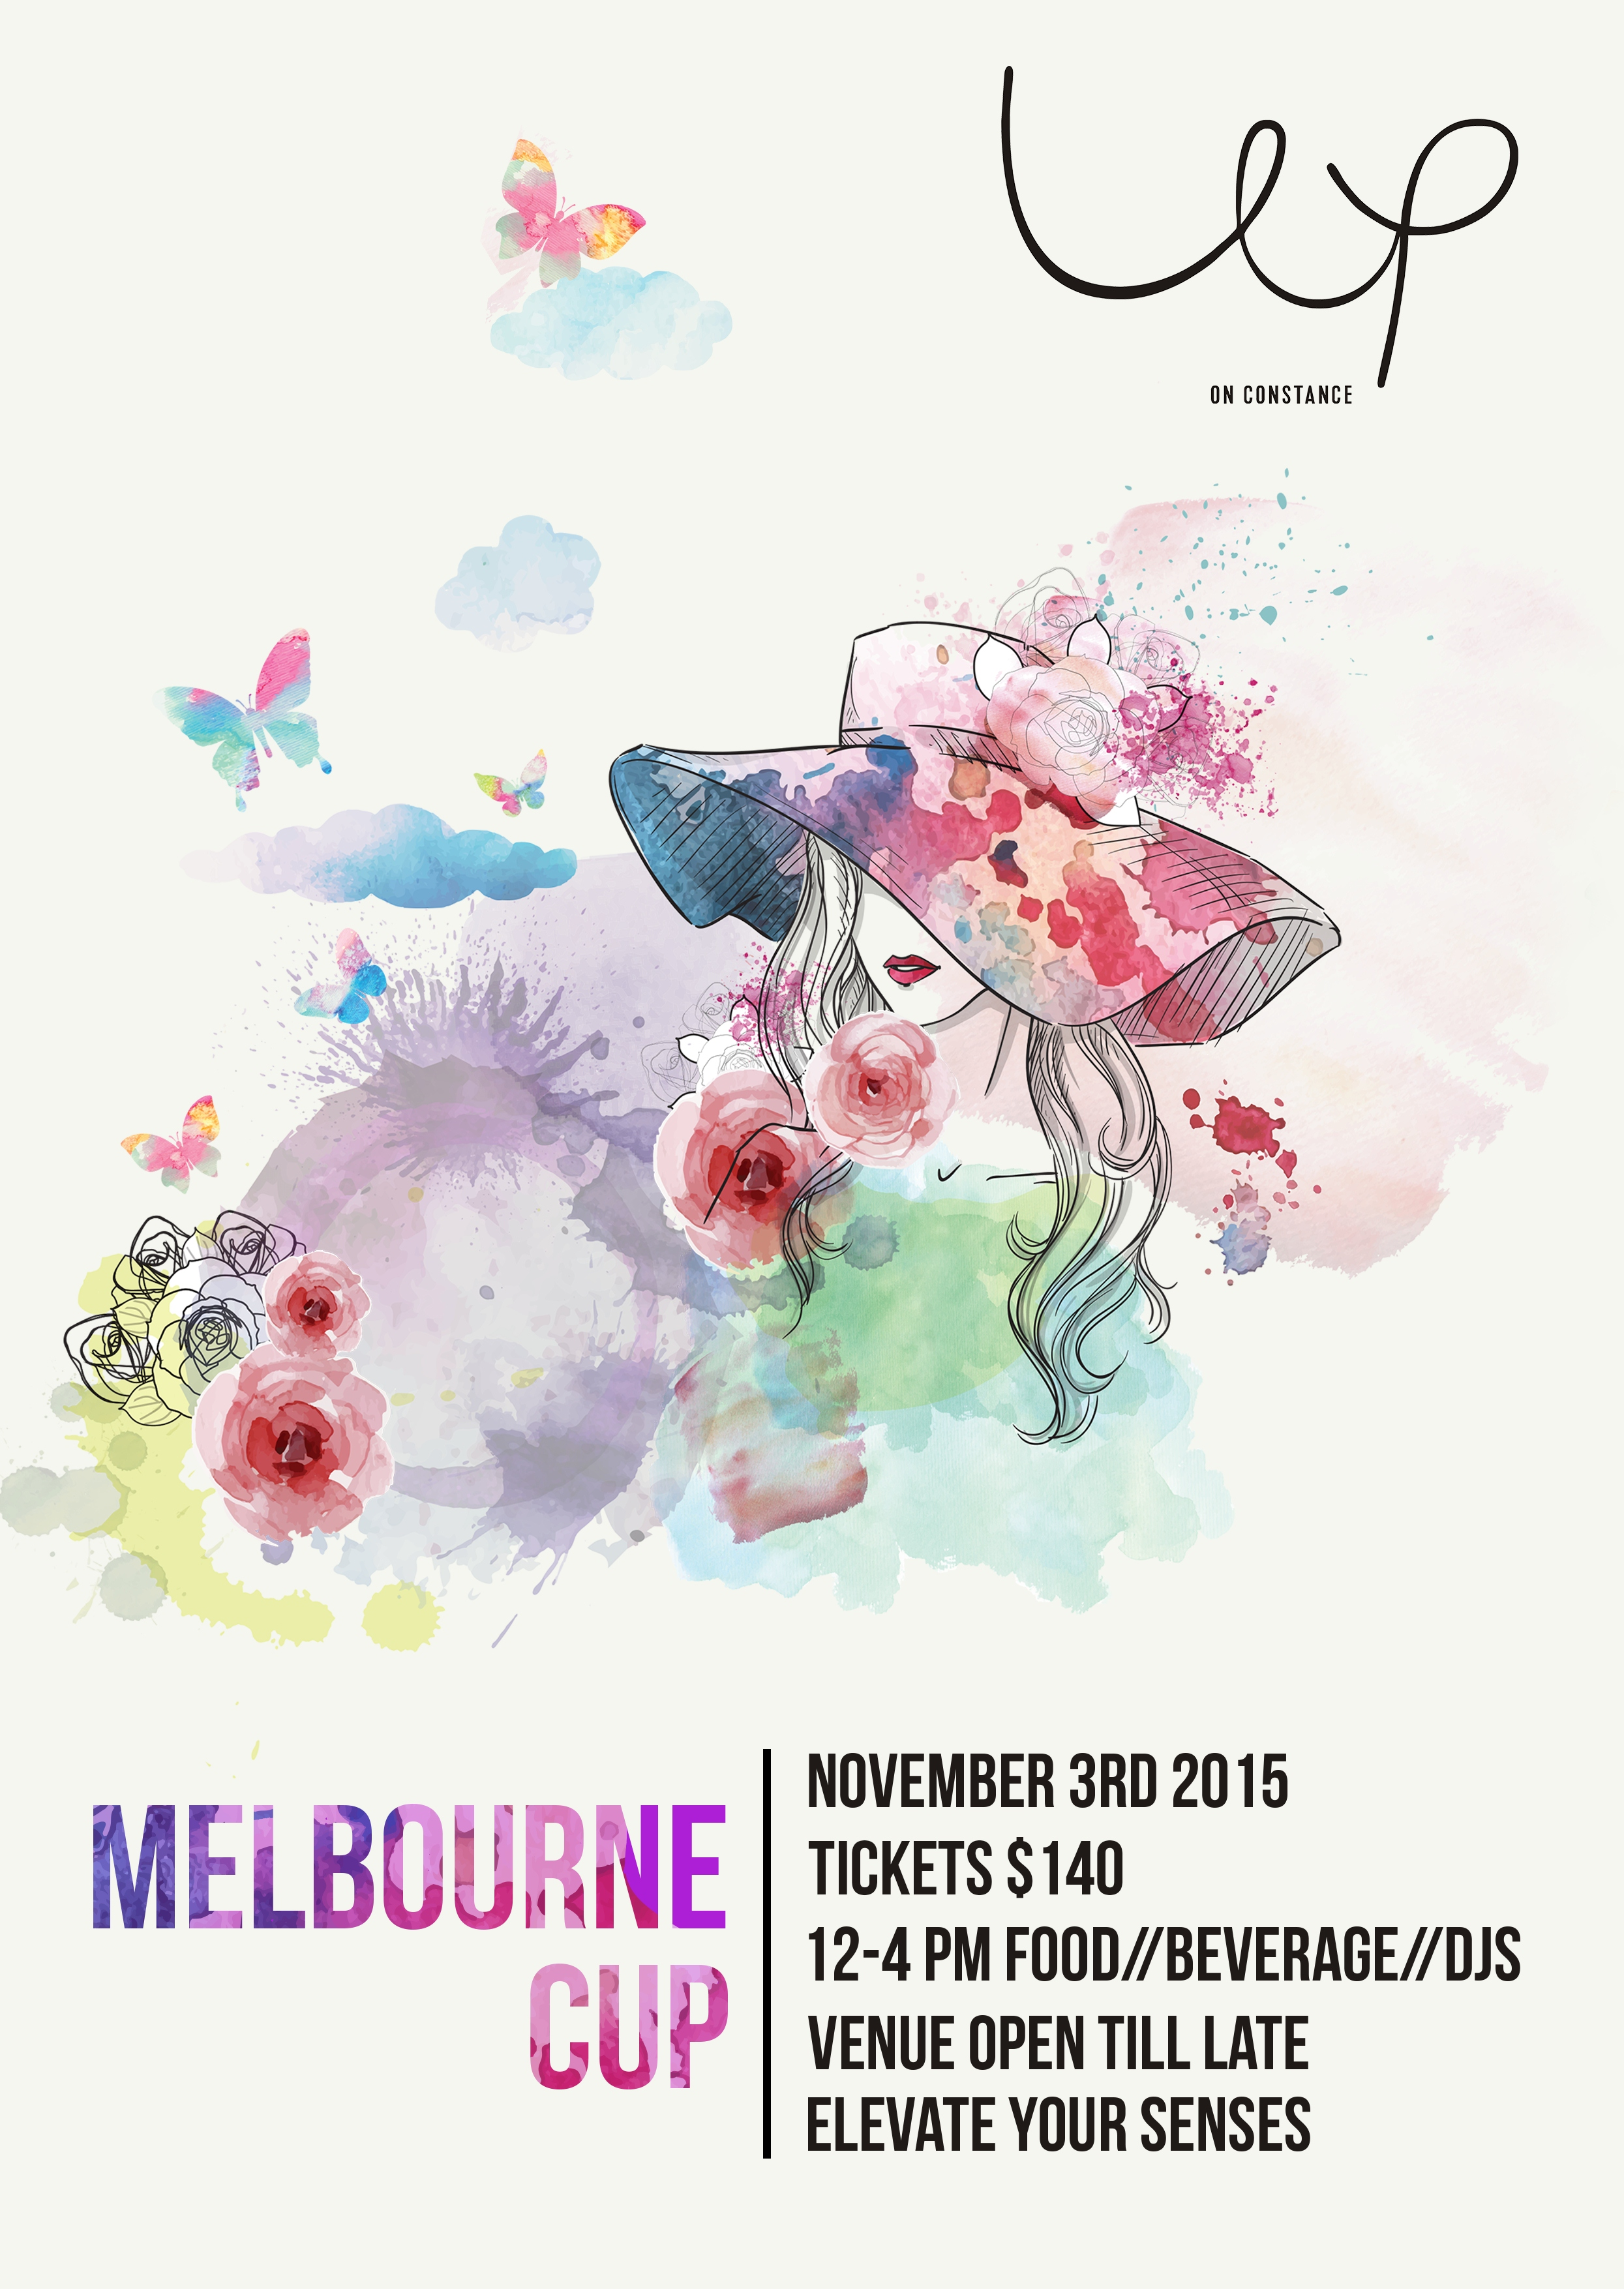 UP_Melbourne Cup